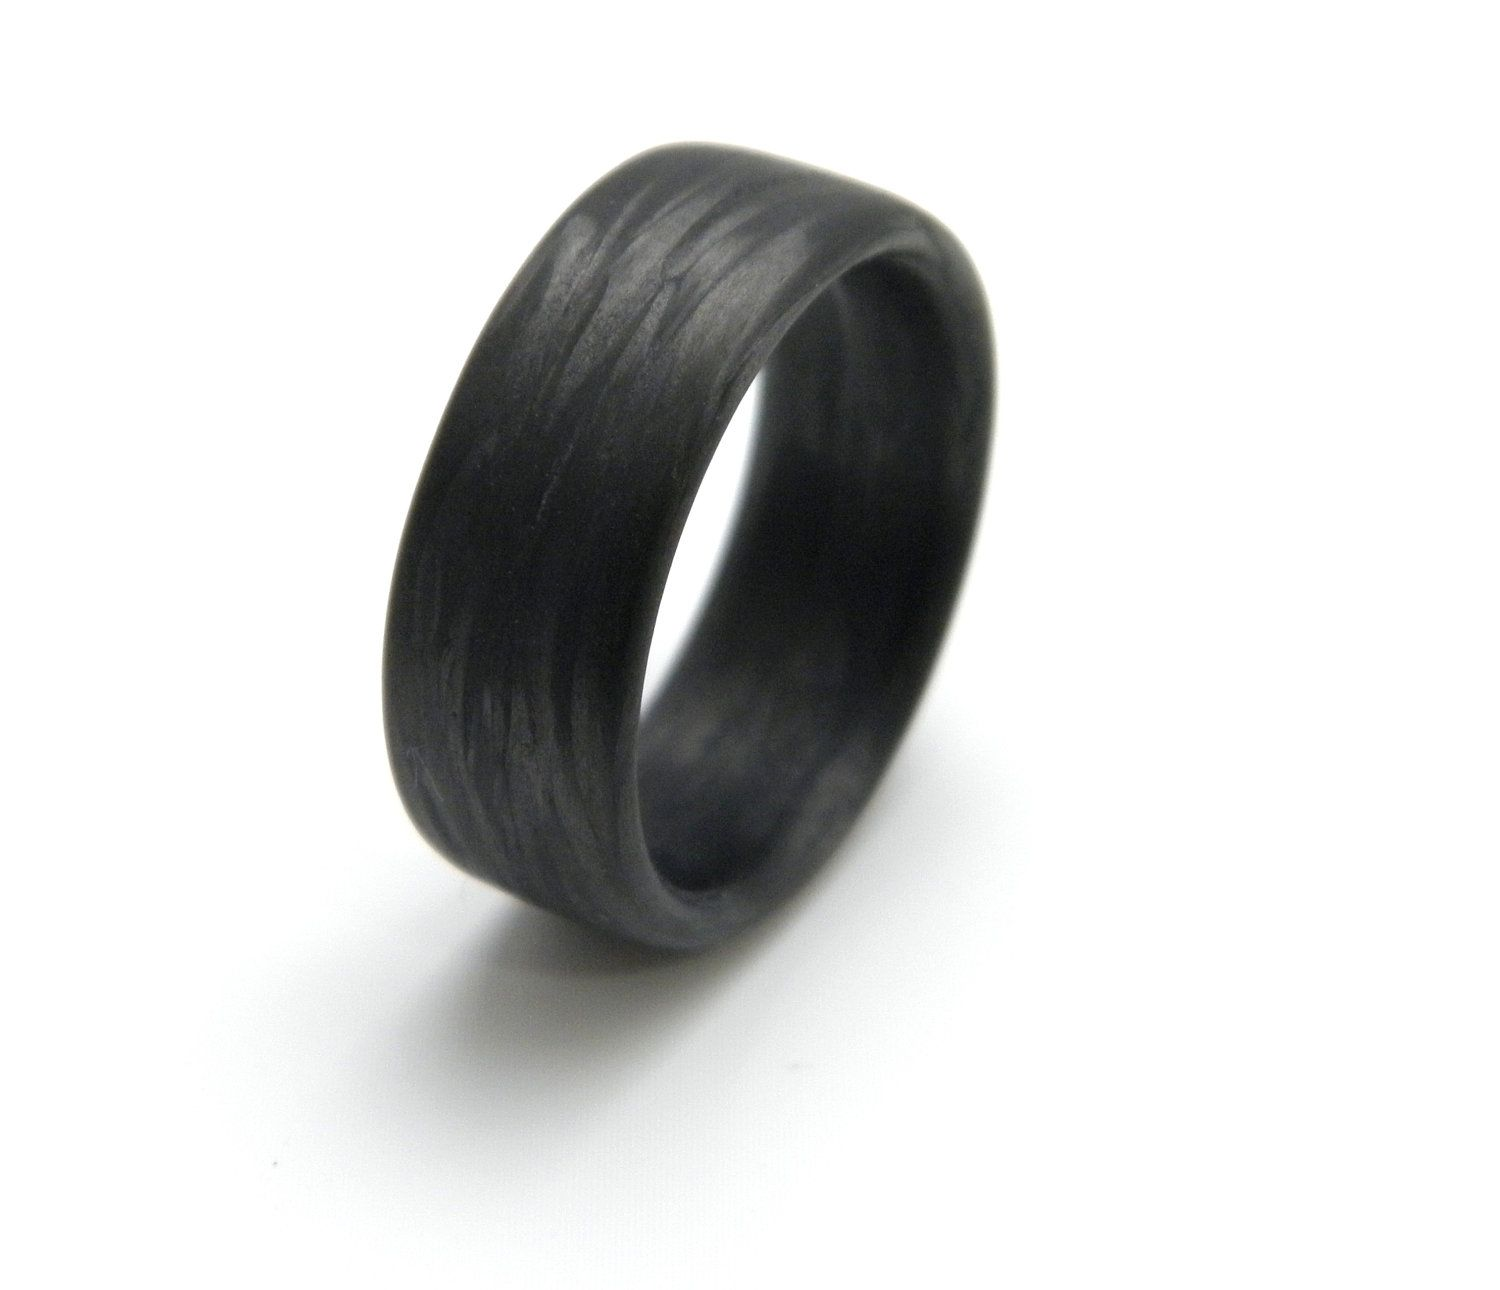 rings band and com carbon wedding amazon pin fibre fiber black tusen jewelry edges with beveled